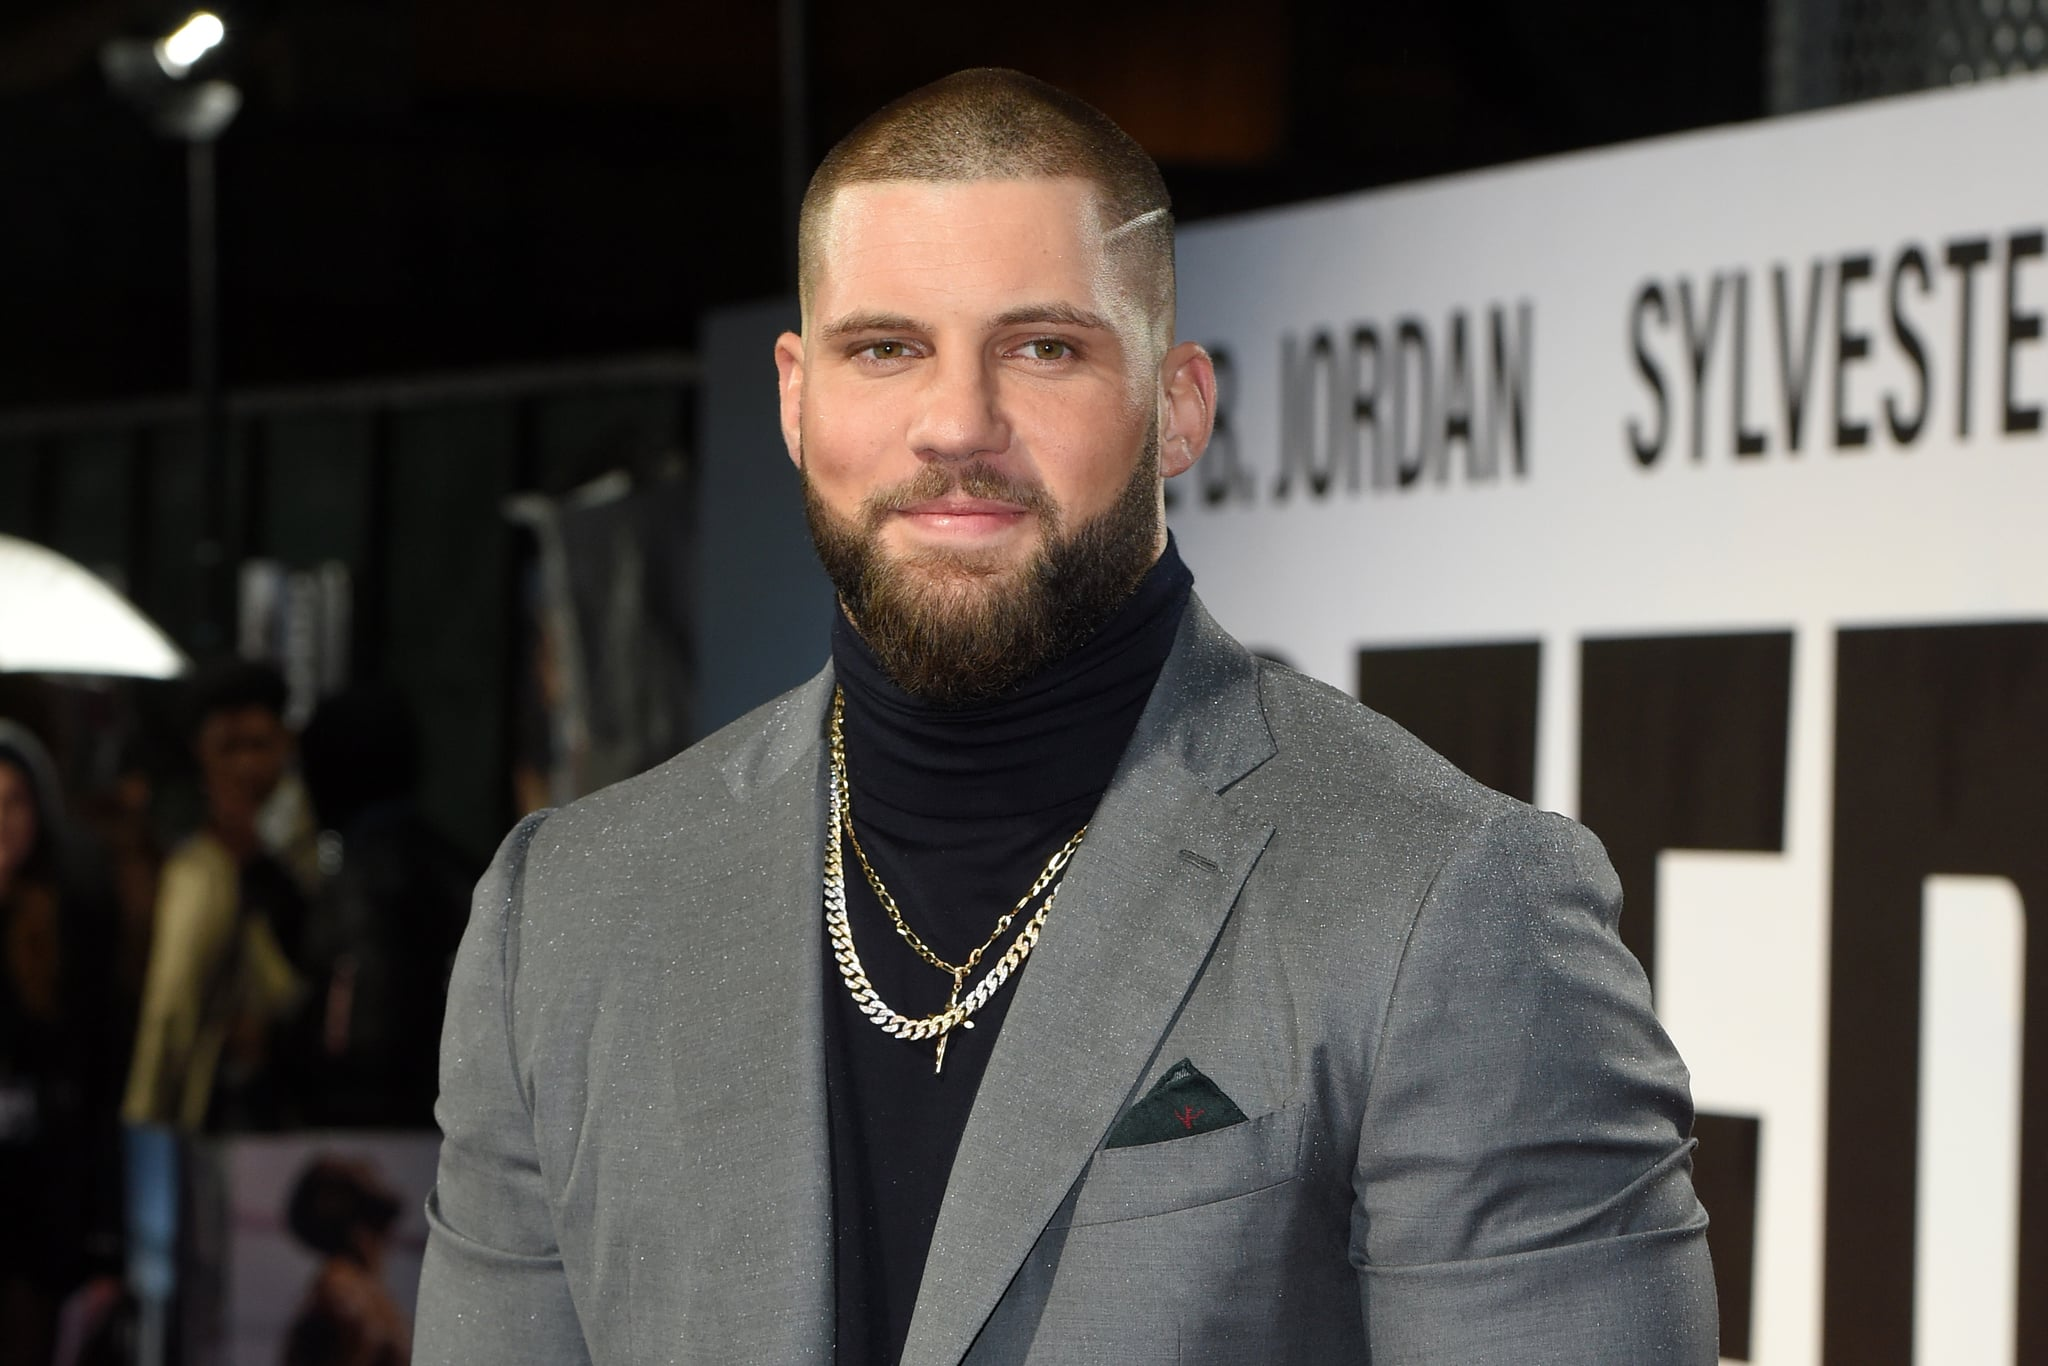 Romanian actor Florian Munteanu poses upon arrival to attend the European Premiere of the film